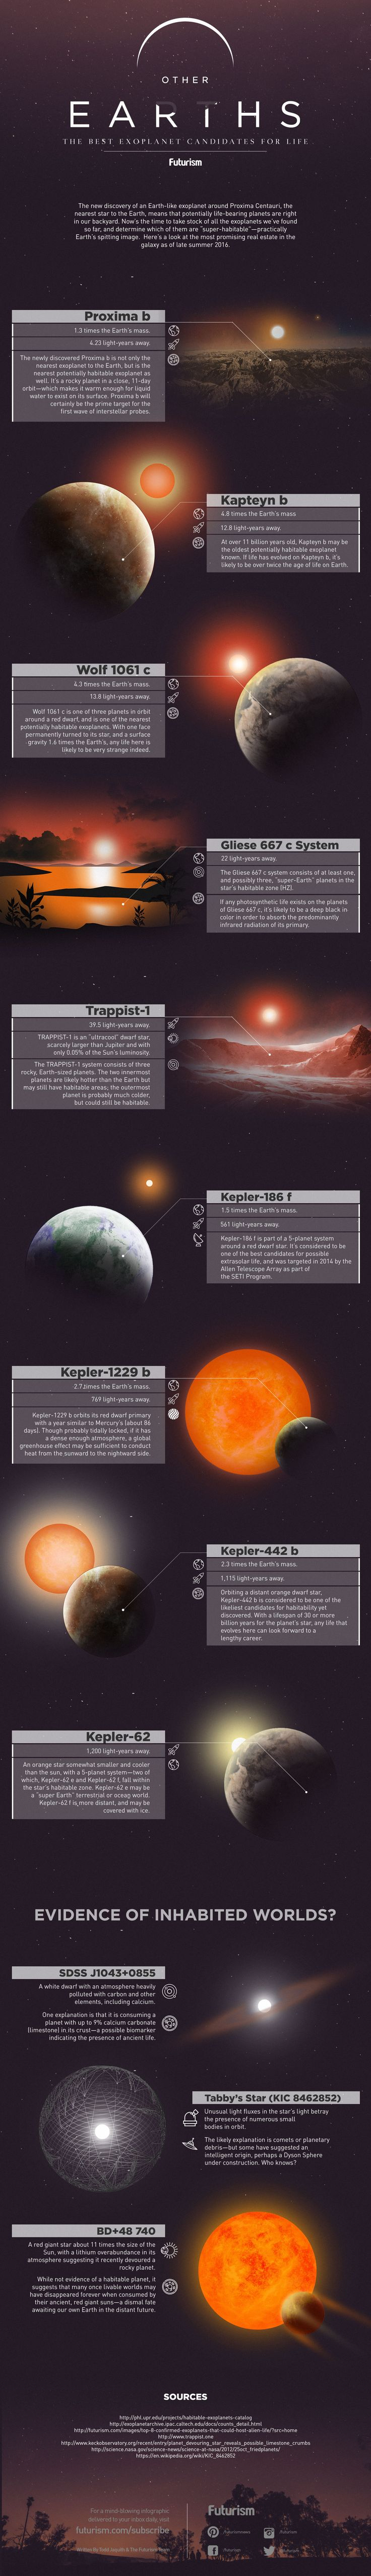 The discovery of Proxima b means that habitable exoplanets are right in our backyard. Here's a look at the most promising real estate in the galaxy.